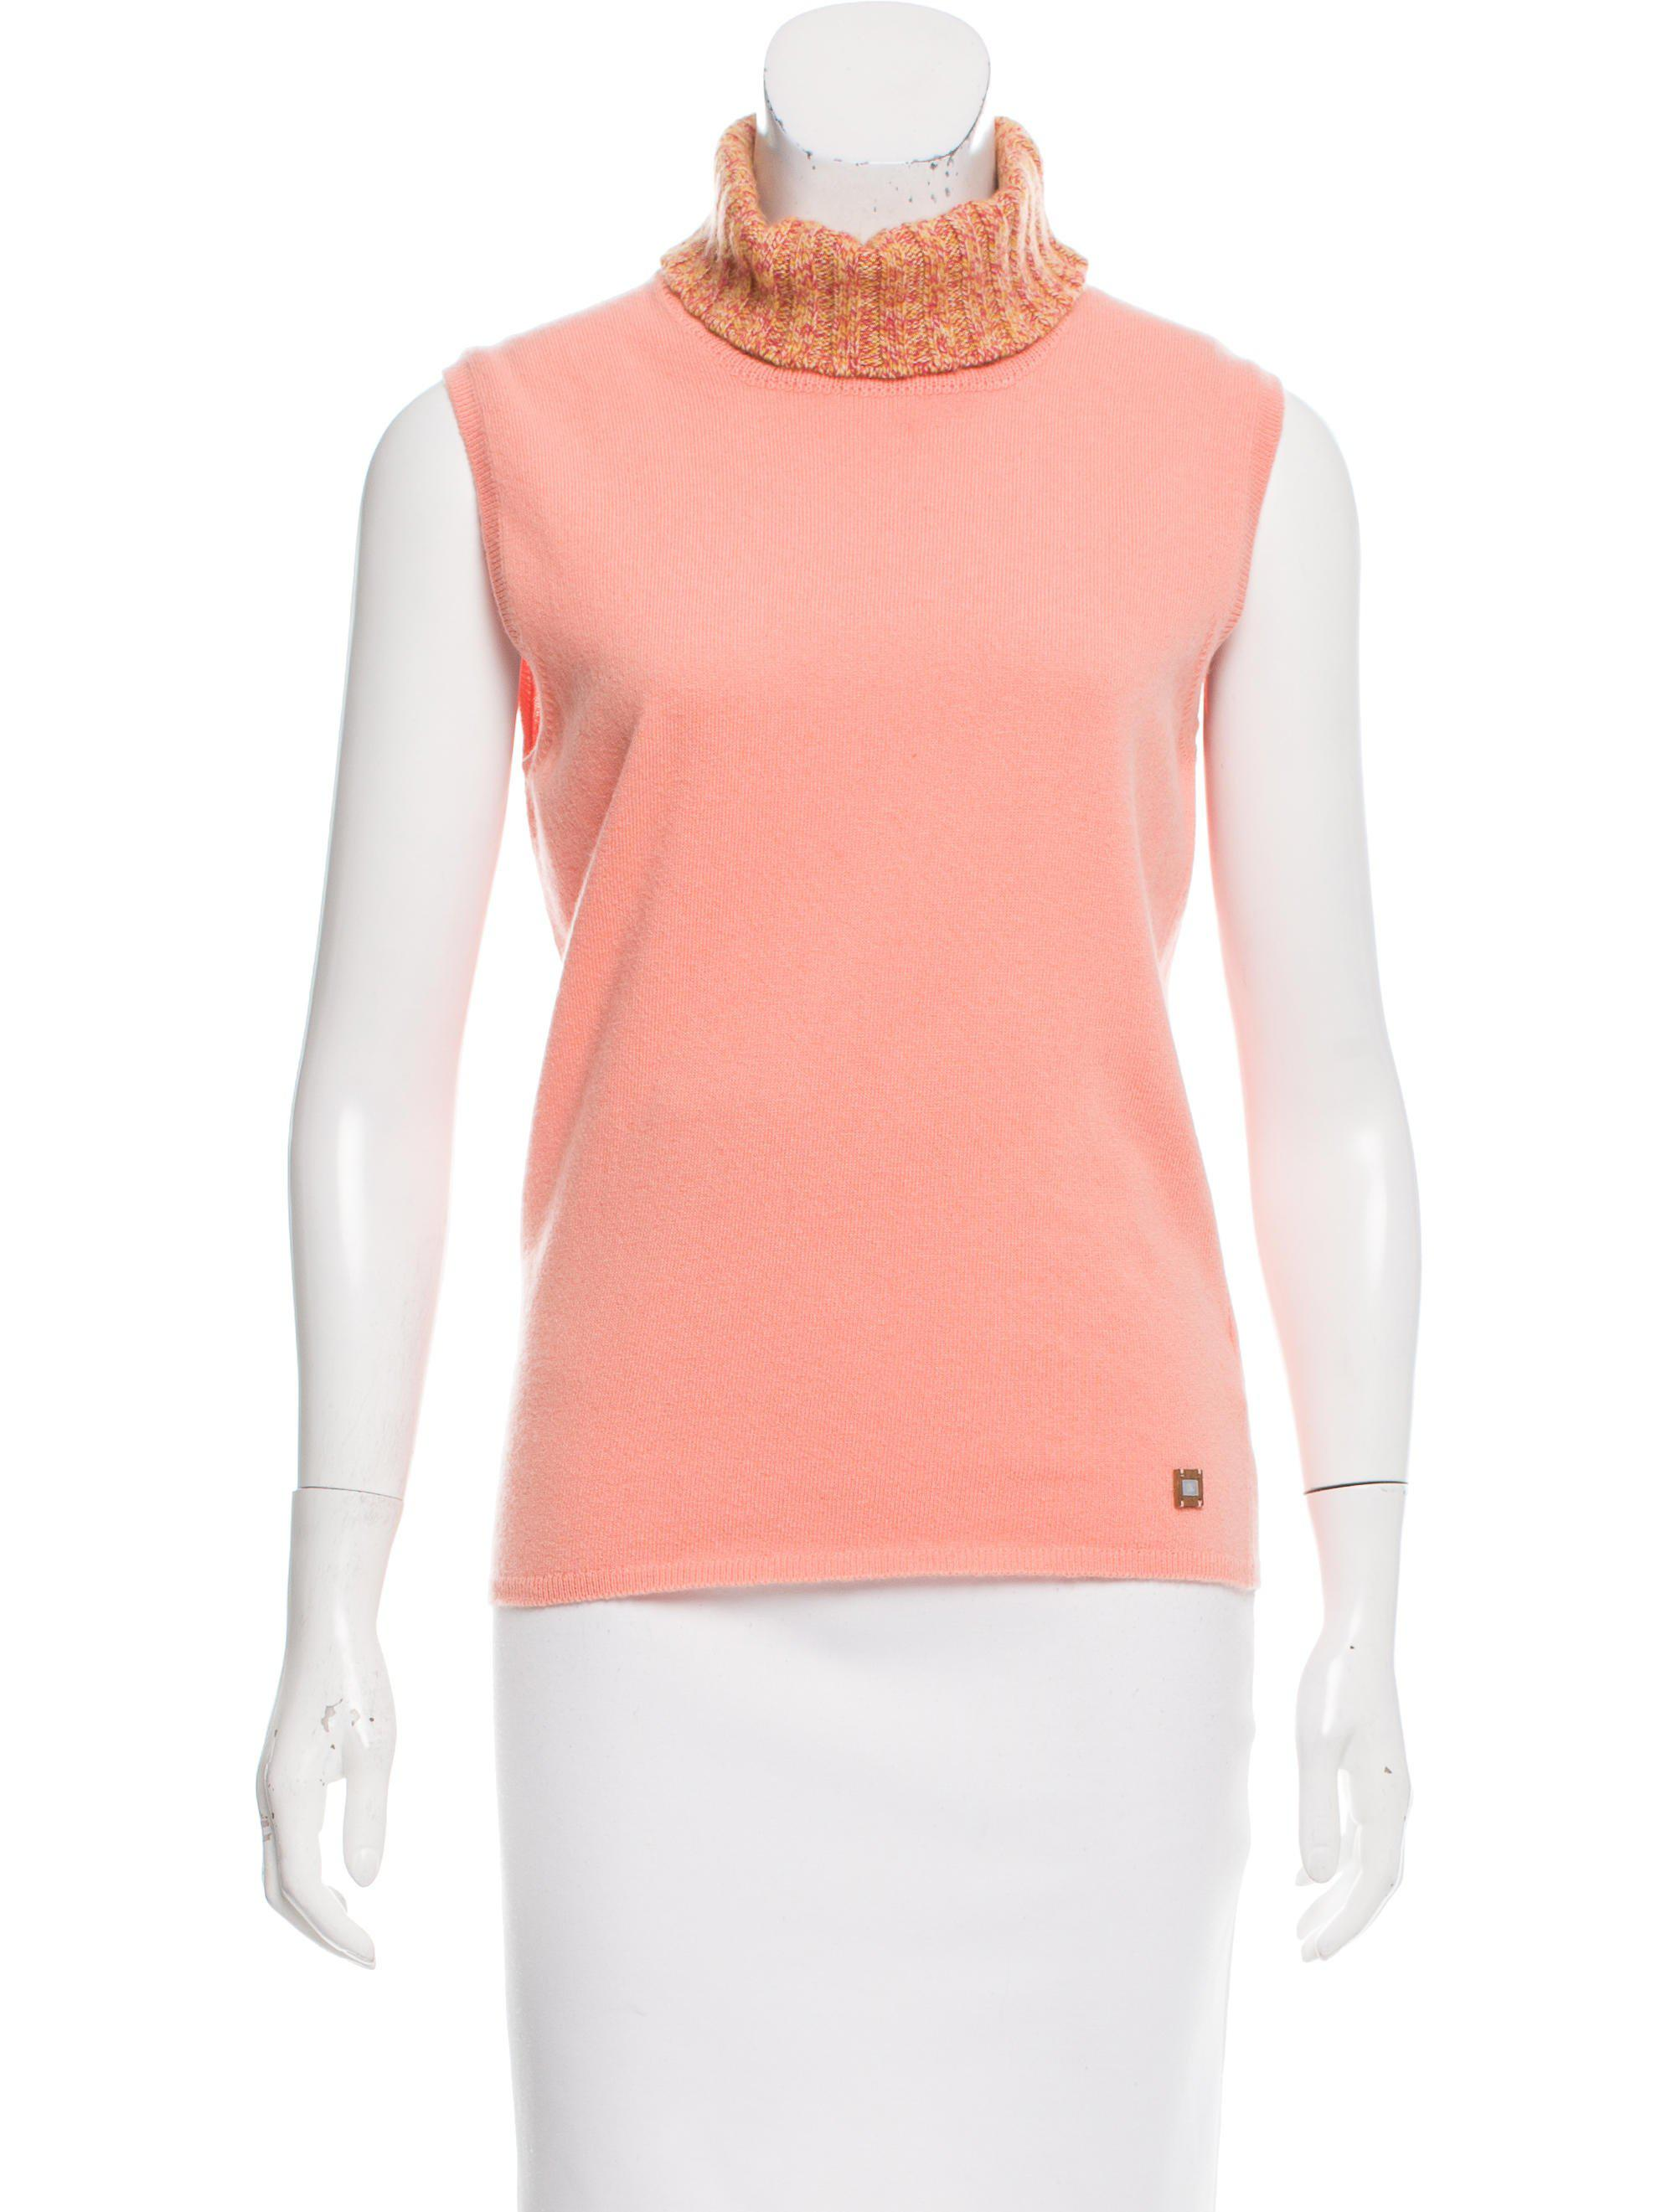 9b8bc67fe67ed Lyst - Chanel Cashmere Sleeveless Top Orange in Pink